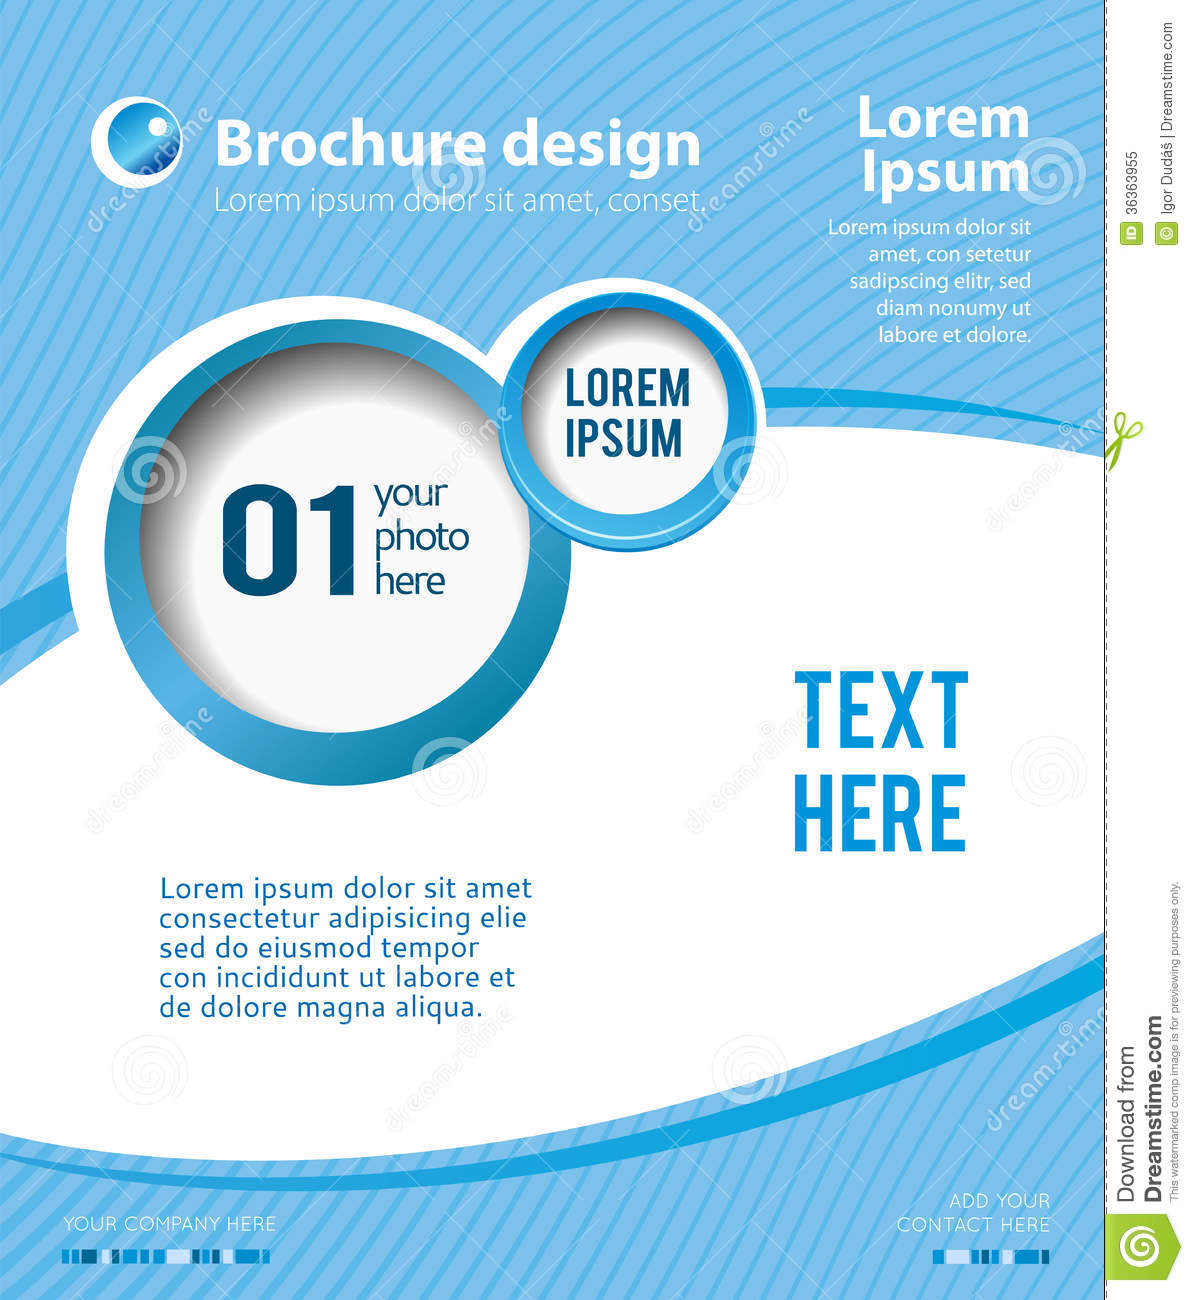 Poster design layout templates - Design A Poster Free Templates